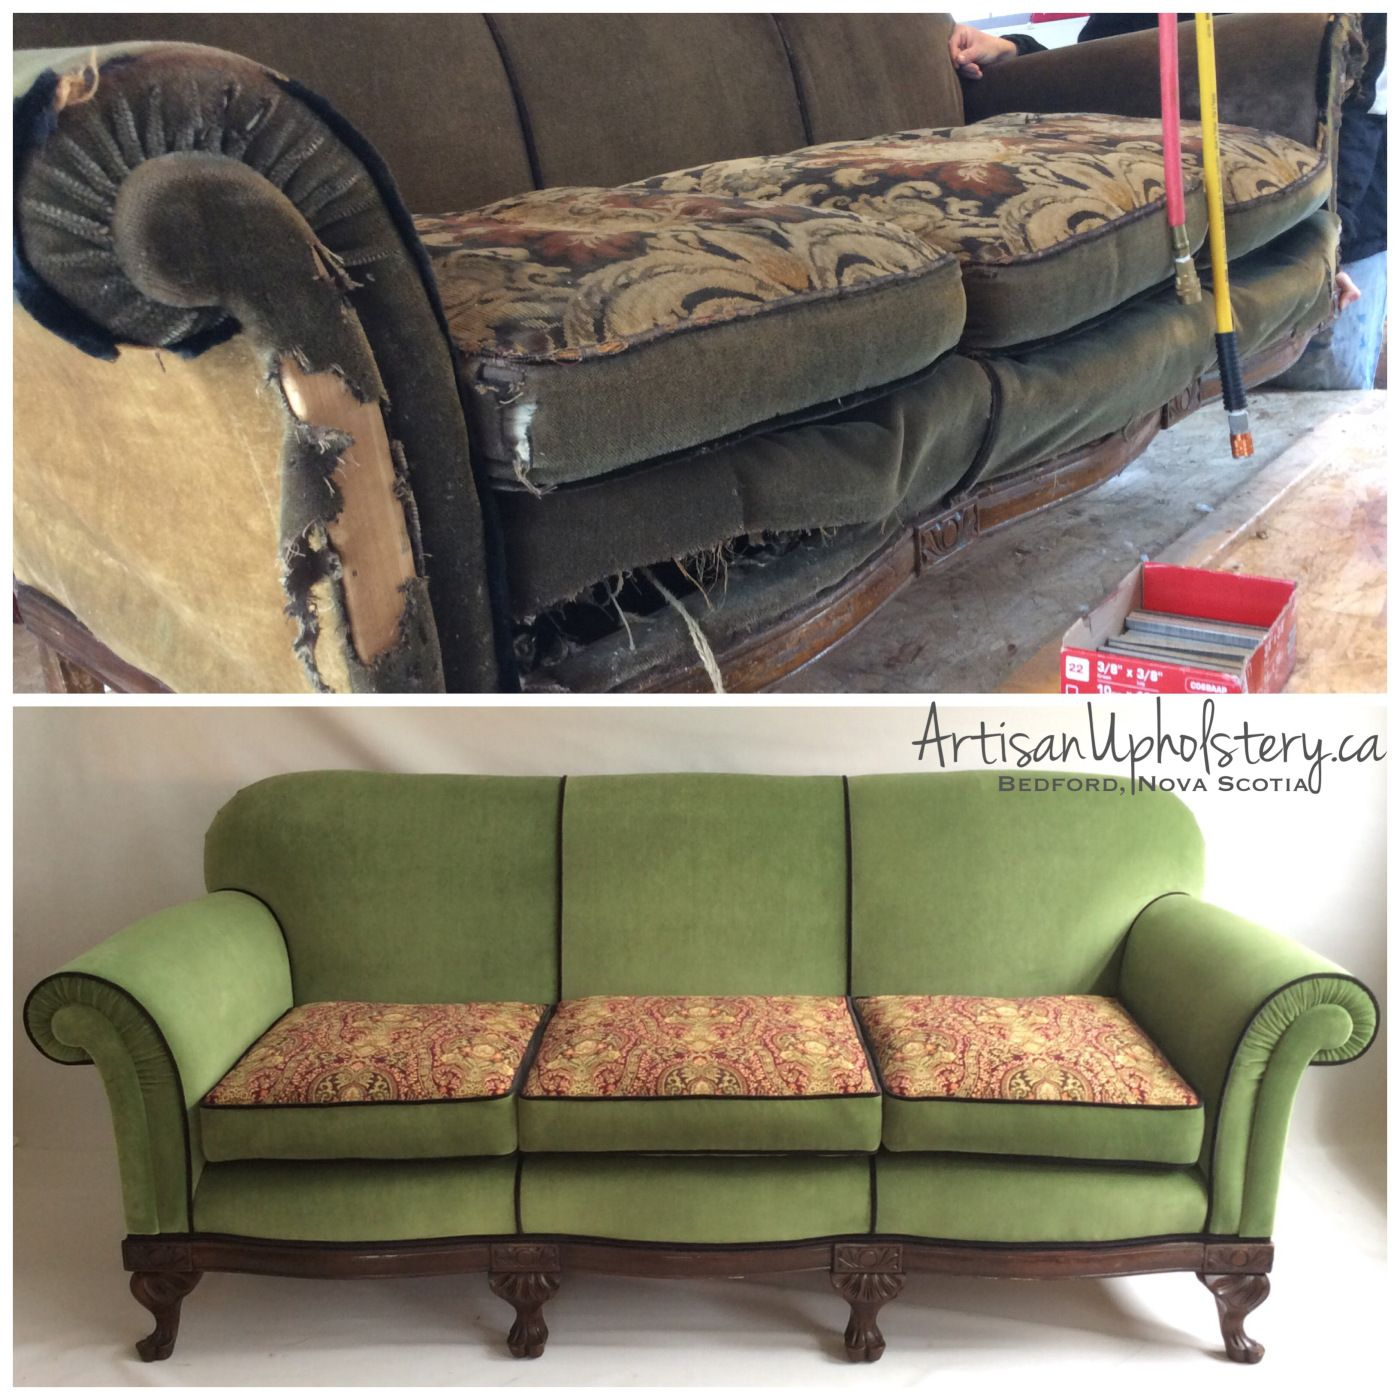 New Artisan Upholstery Has A Youtube Channel In A Few Of My